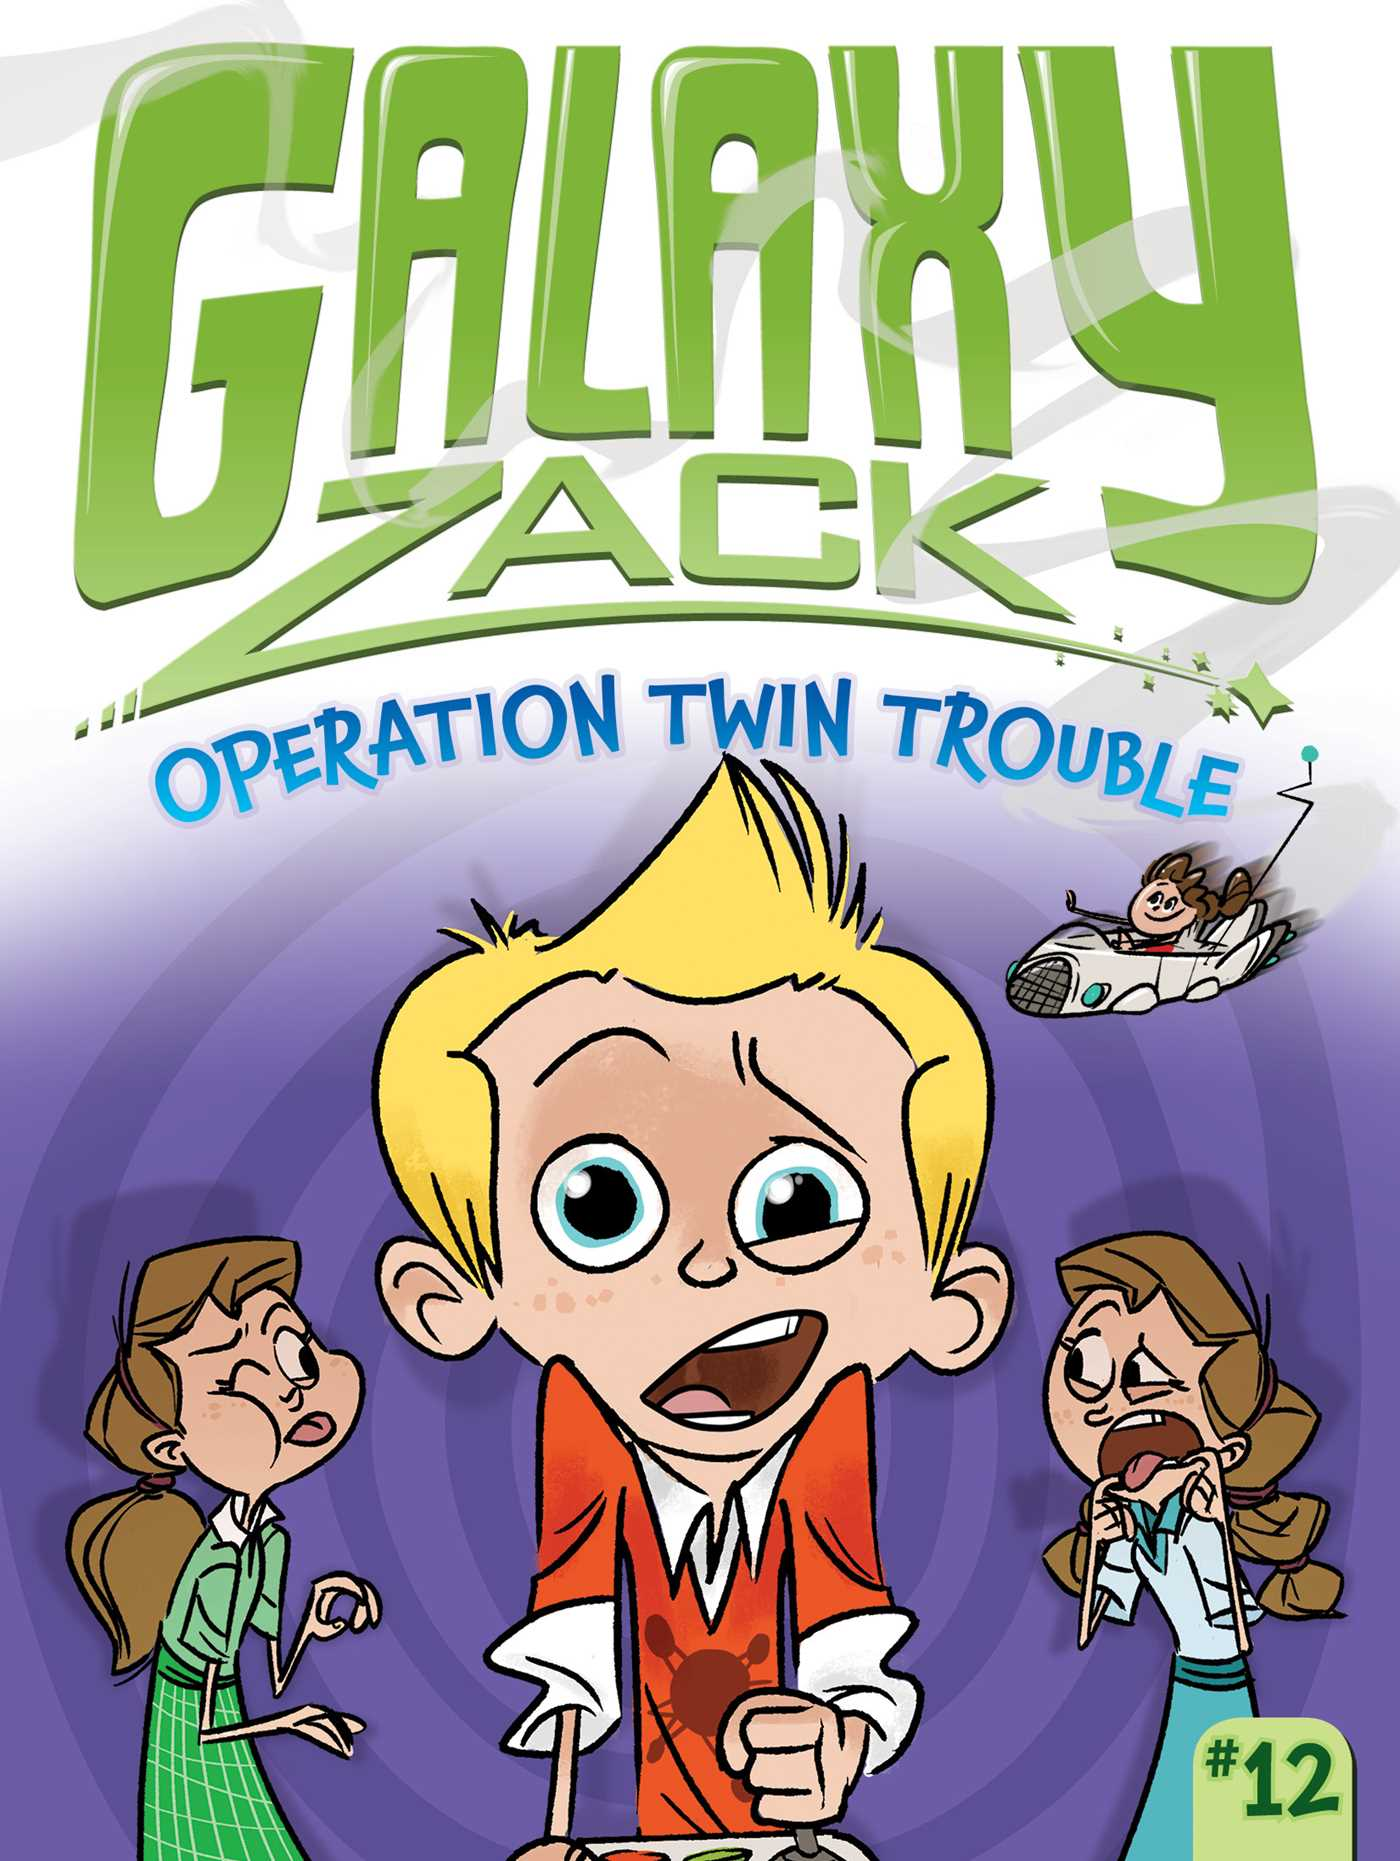 Operation twin trouble 9781481443999 hr